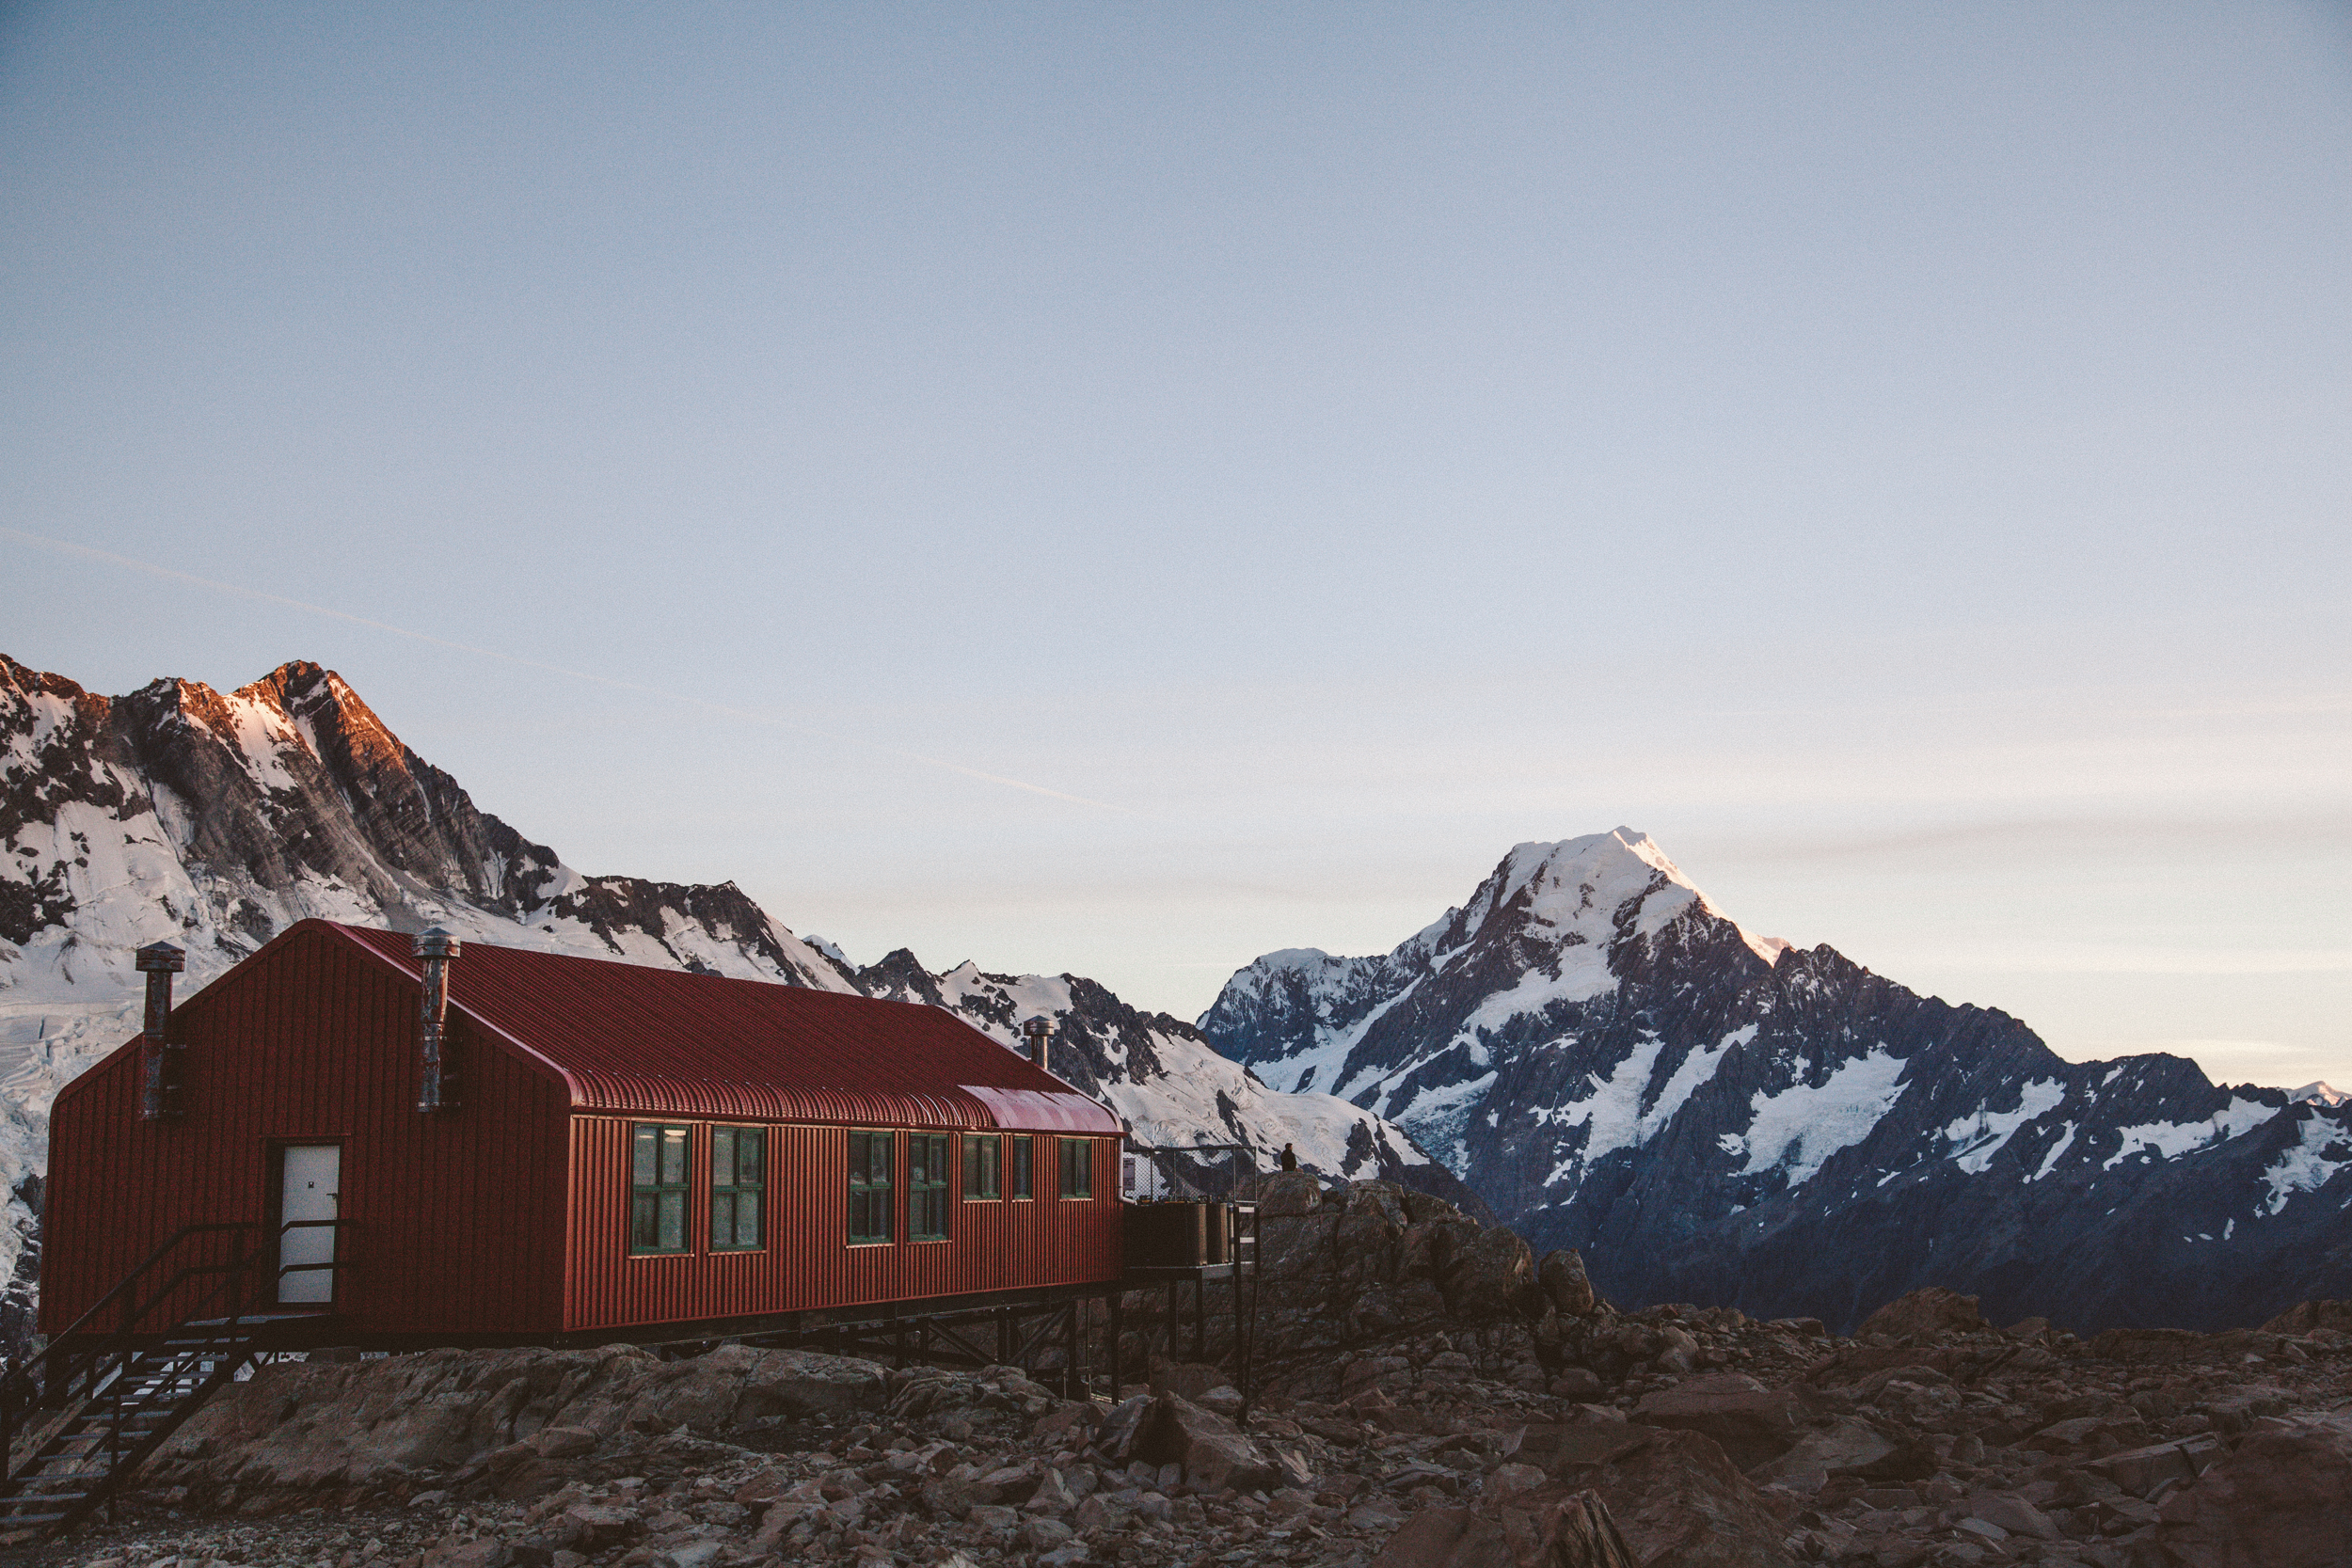 The view from Mueller Hut looking out towards Mt Cook